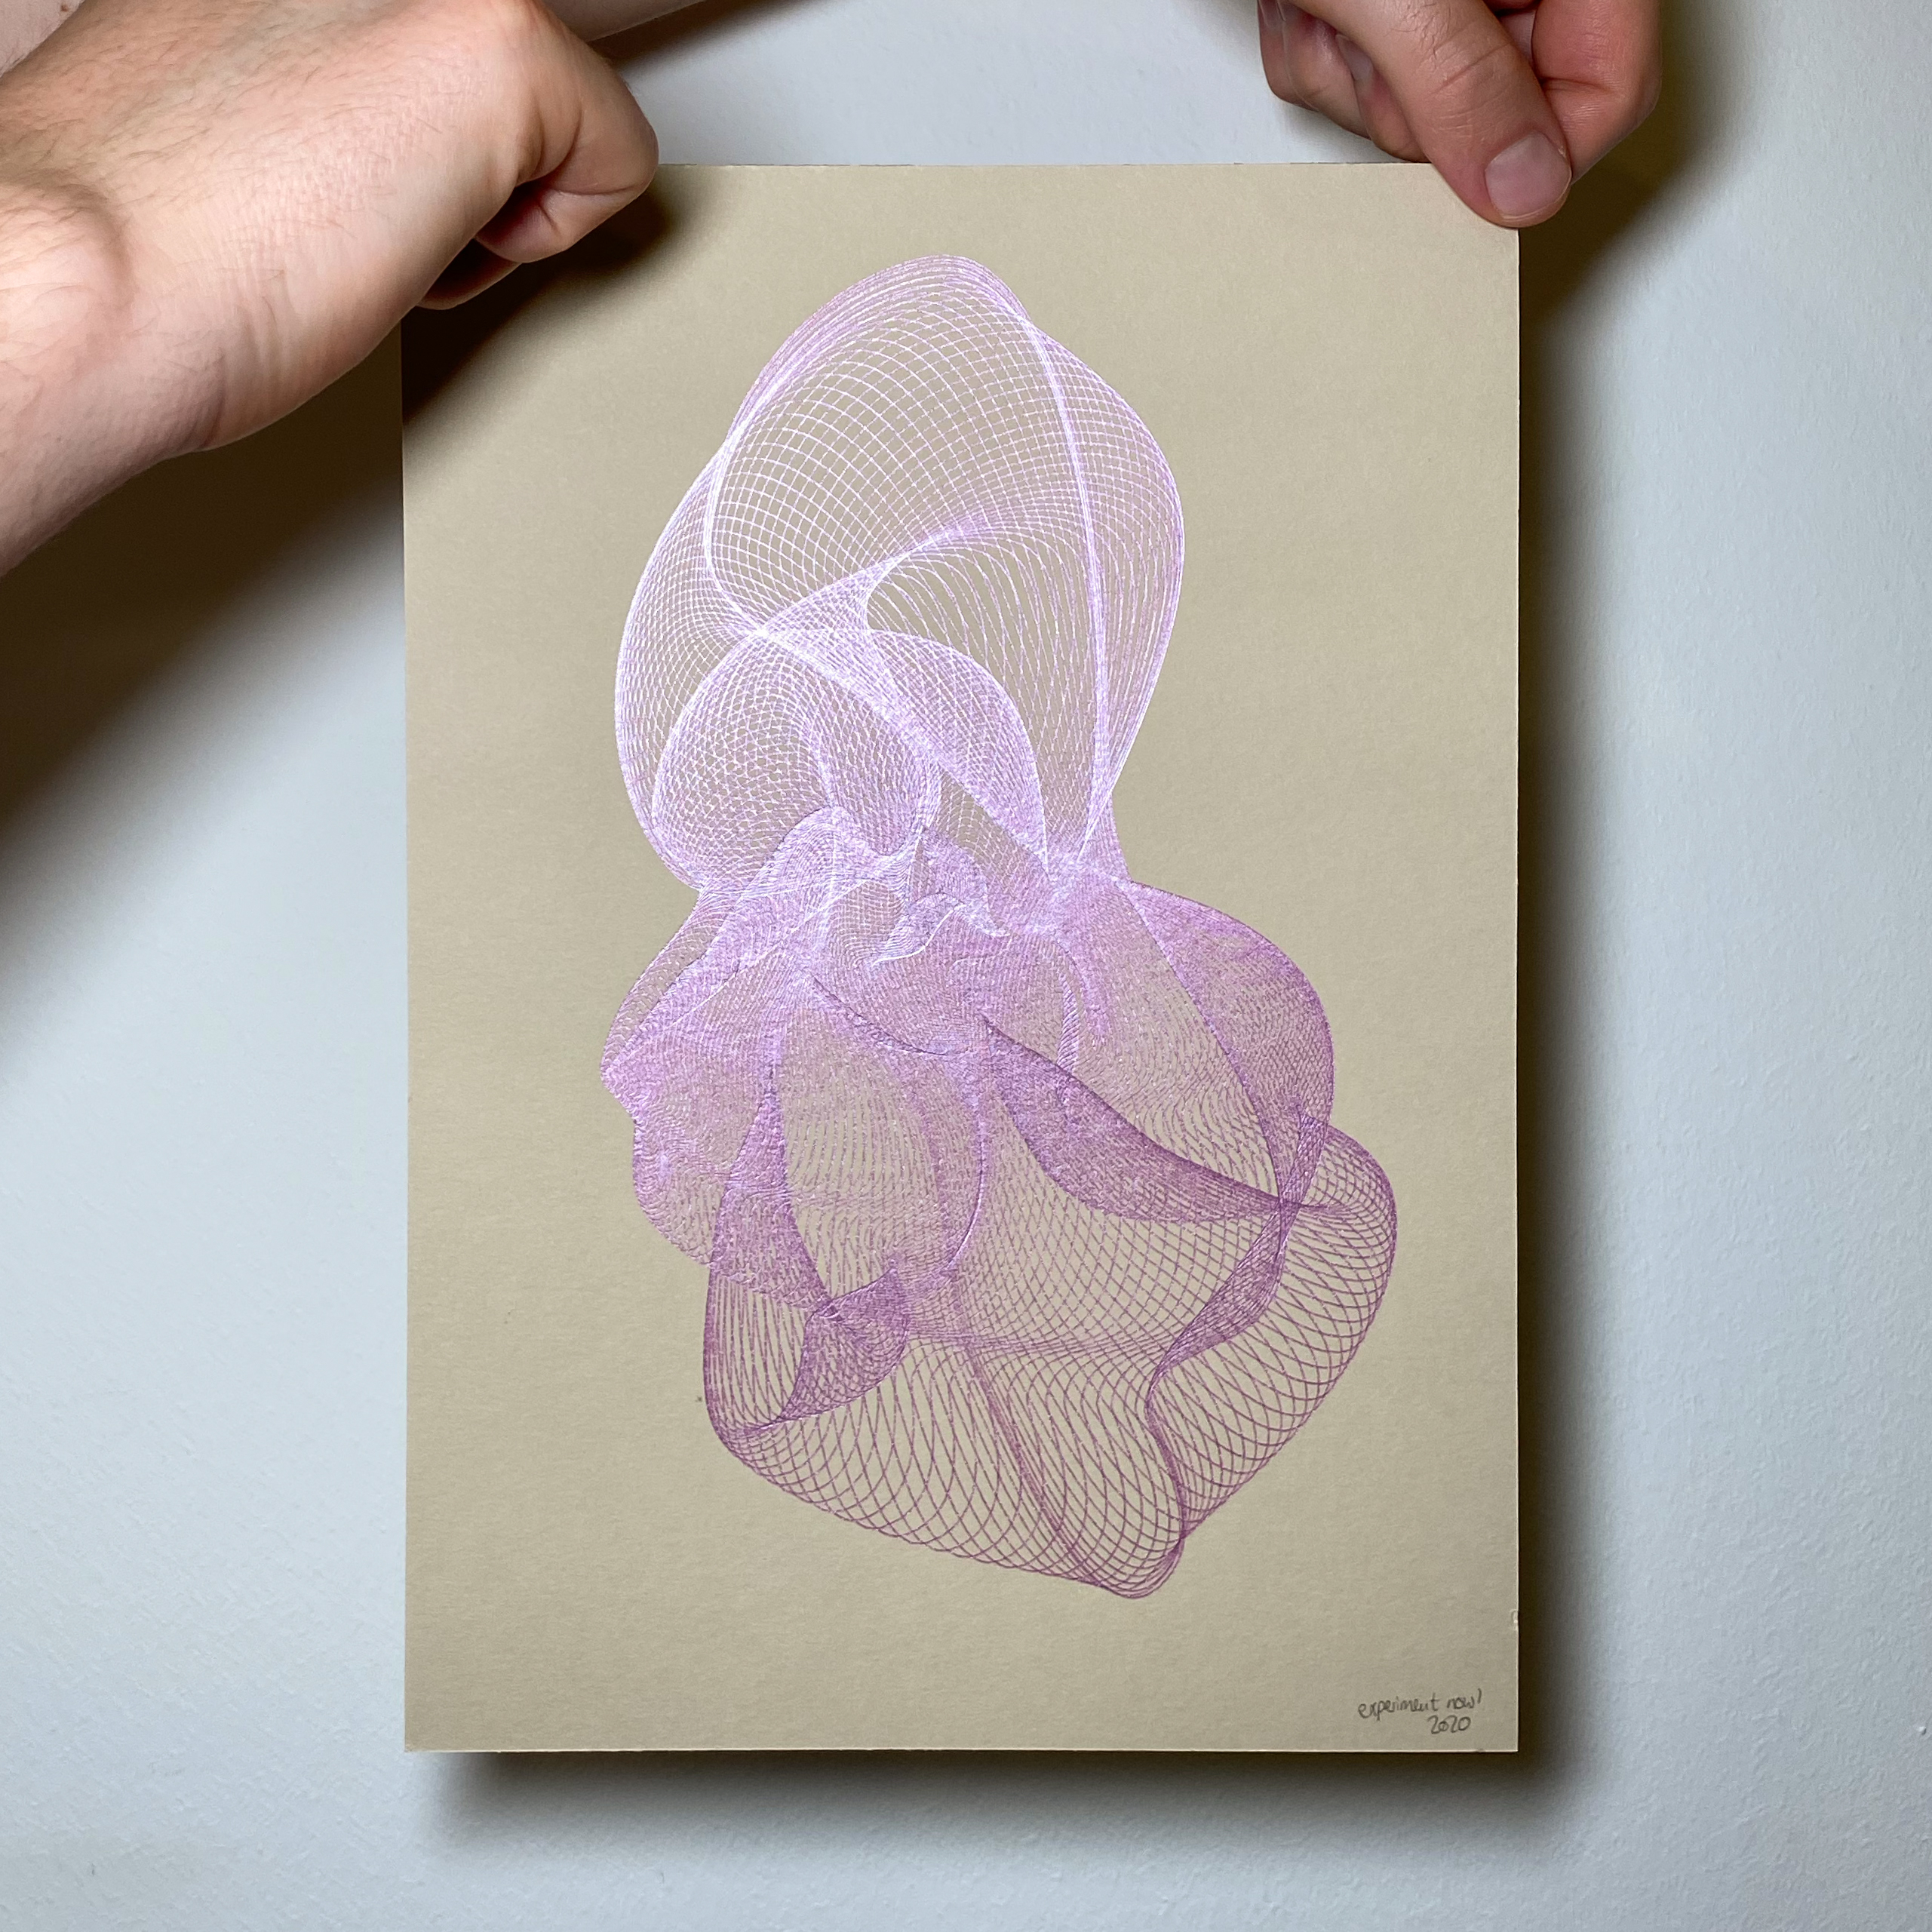 Two hands are holding a beige page (size: A4) with generative art in metallic pink on it.